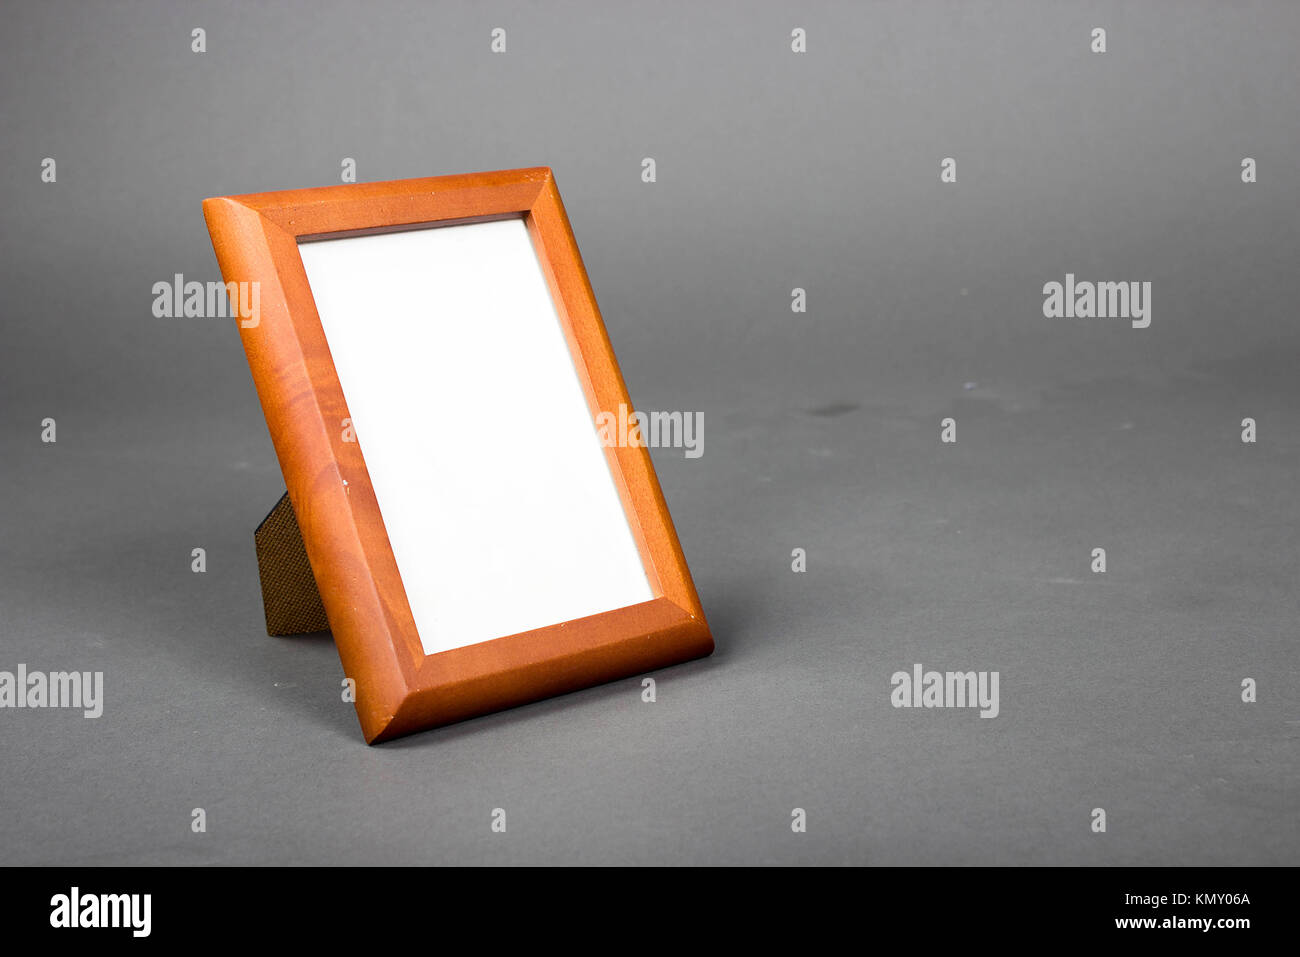 Rectangle Empty Picture Frame With Wood Frame On Gray